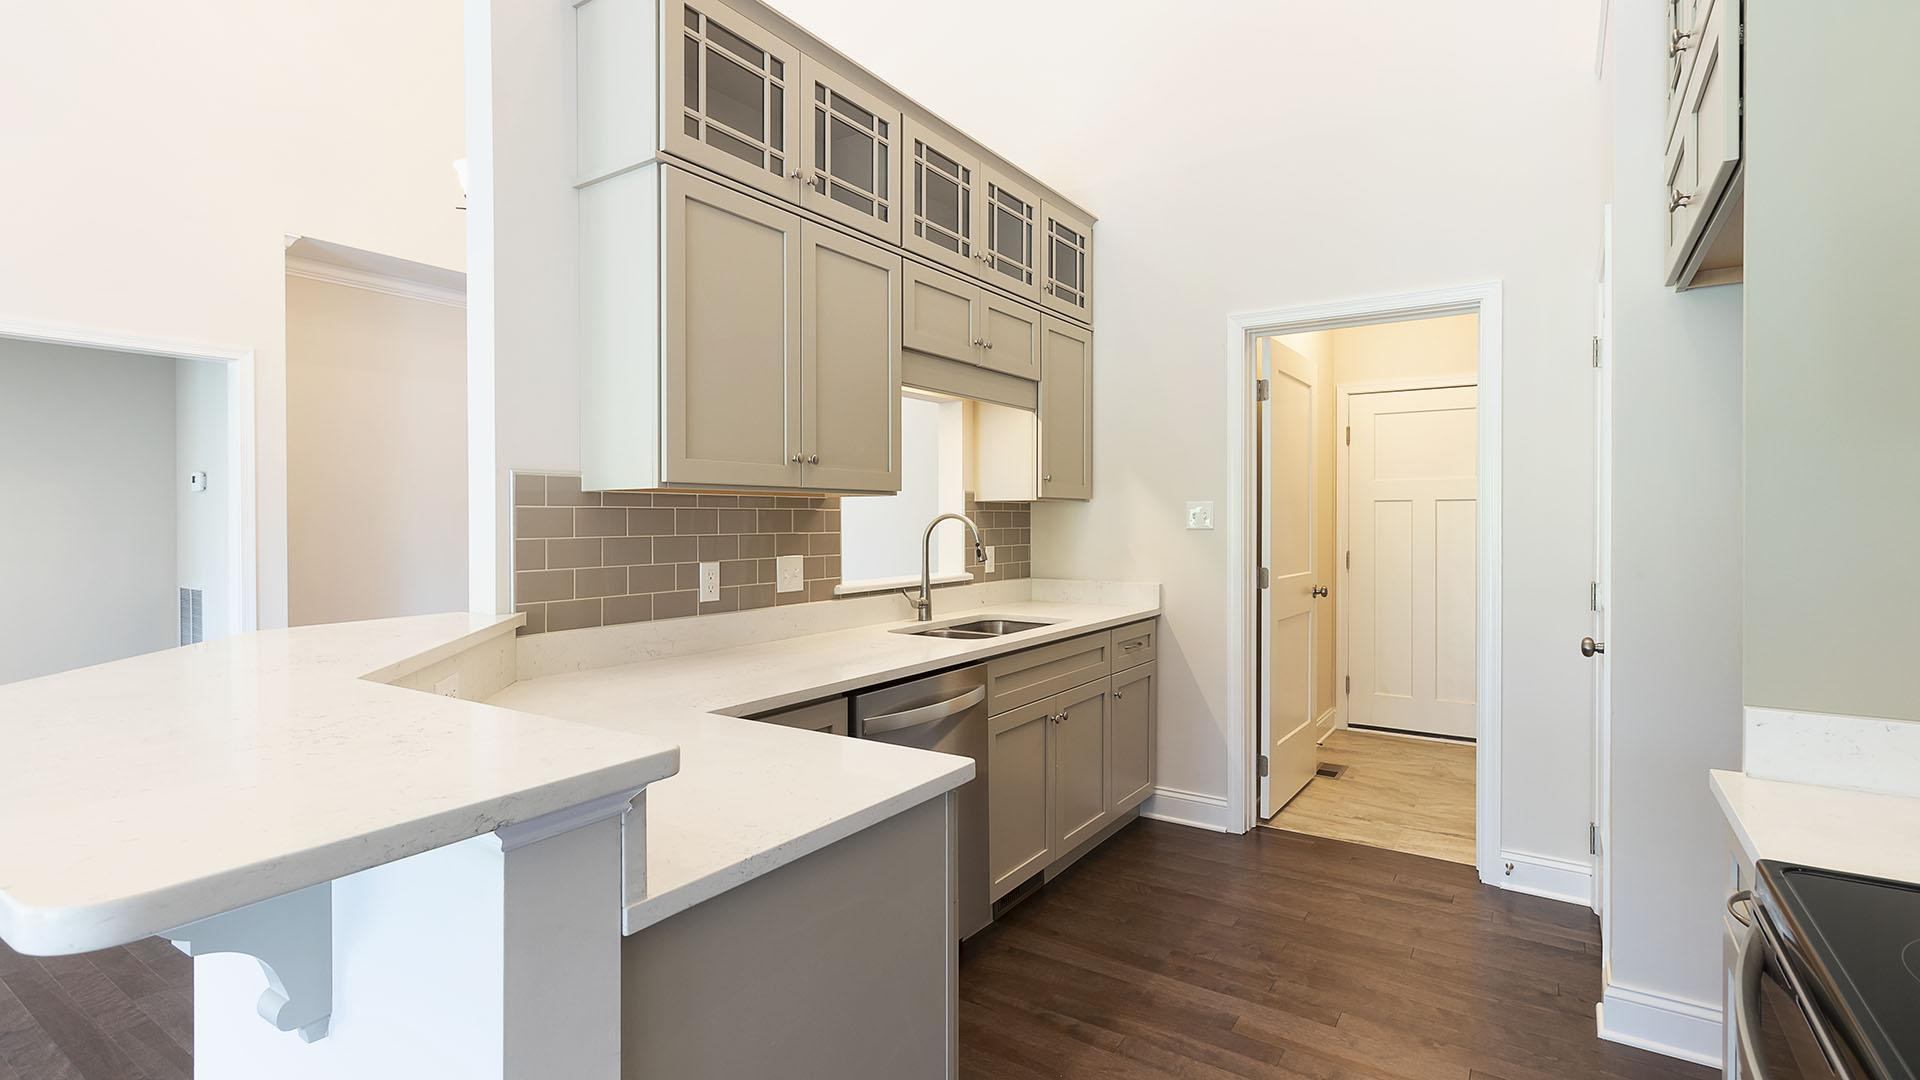 Kitchen featured in the Chilton By S & A Homes in State College, PA